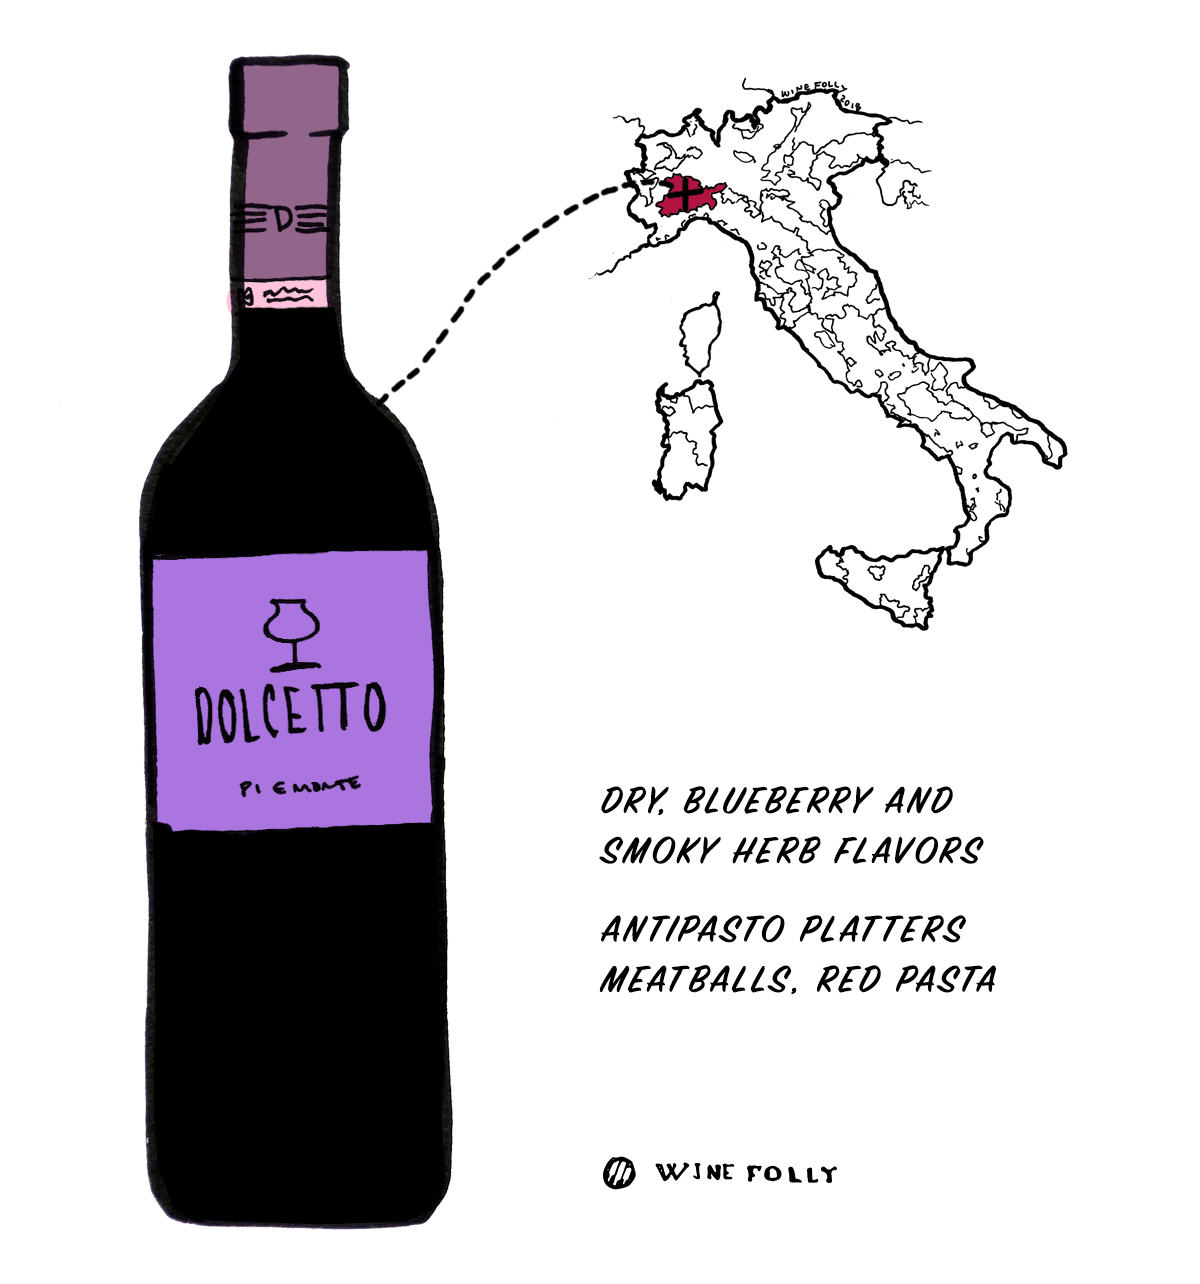 Dolcetto red wine grape from Italy - Great choice for beginners into Italian wine - Illustration by Wine Folly